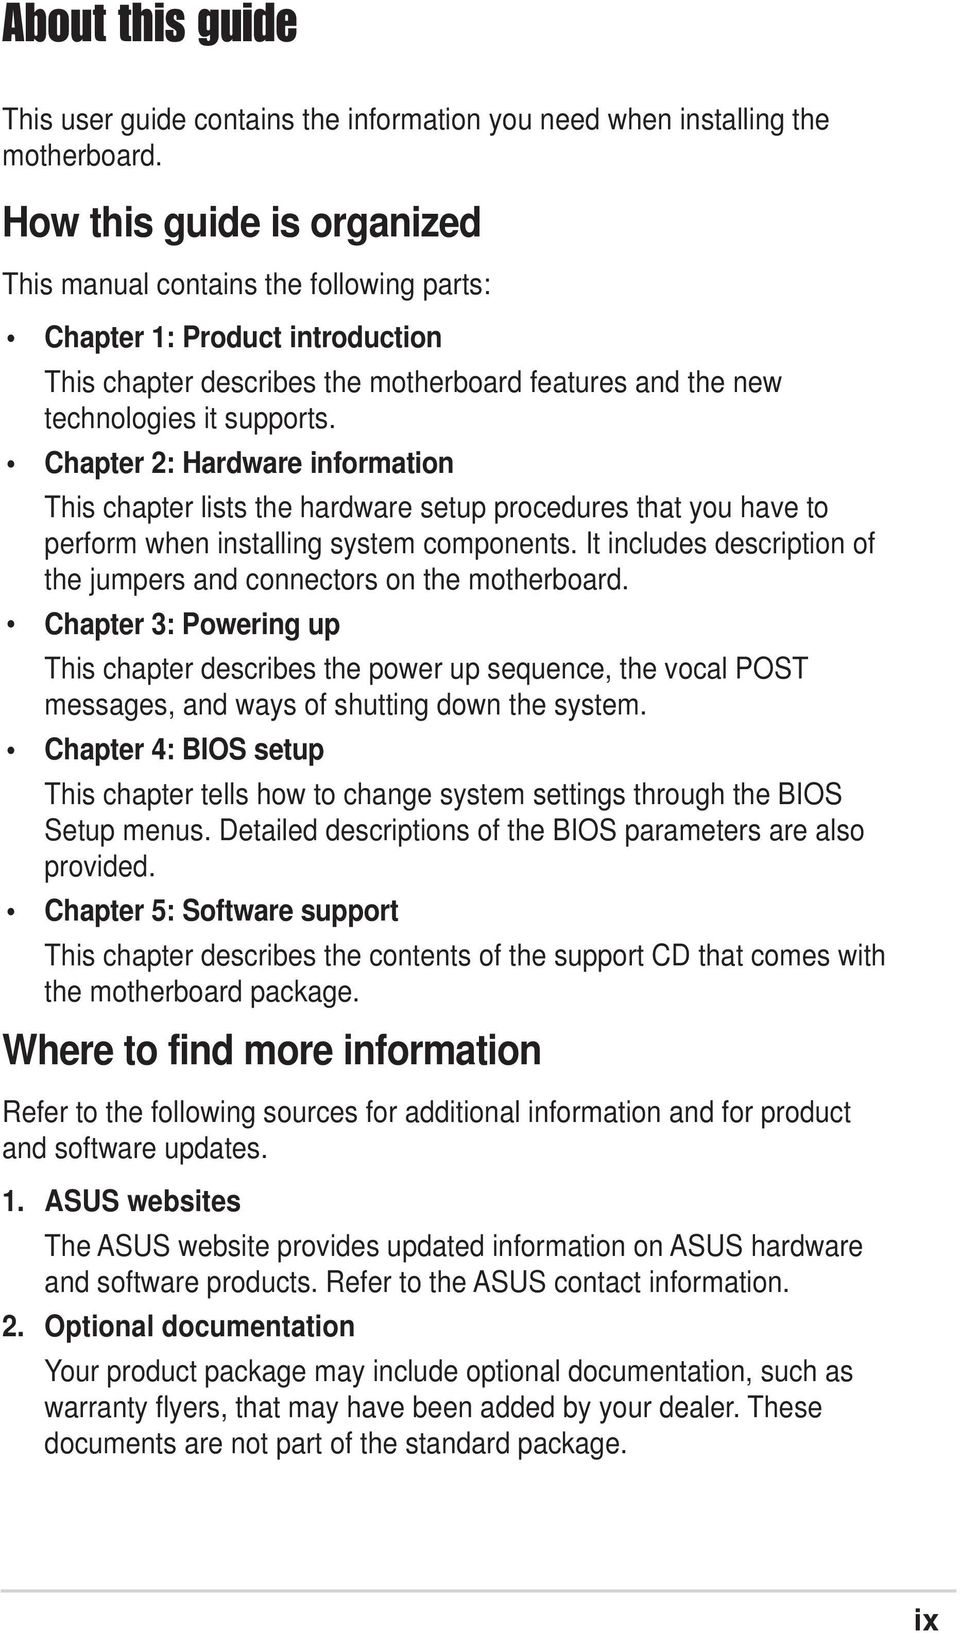 Chapter 2: Hardware information This chapter lists the hardware setup procedures that you have to perform when installing system components.